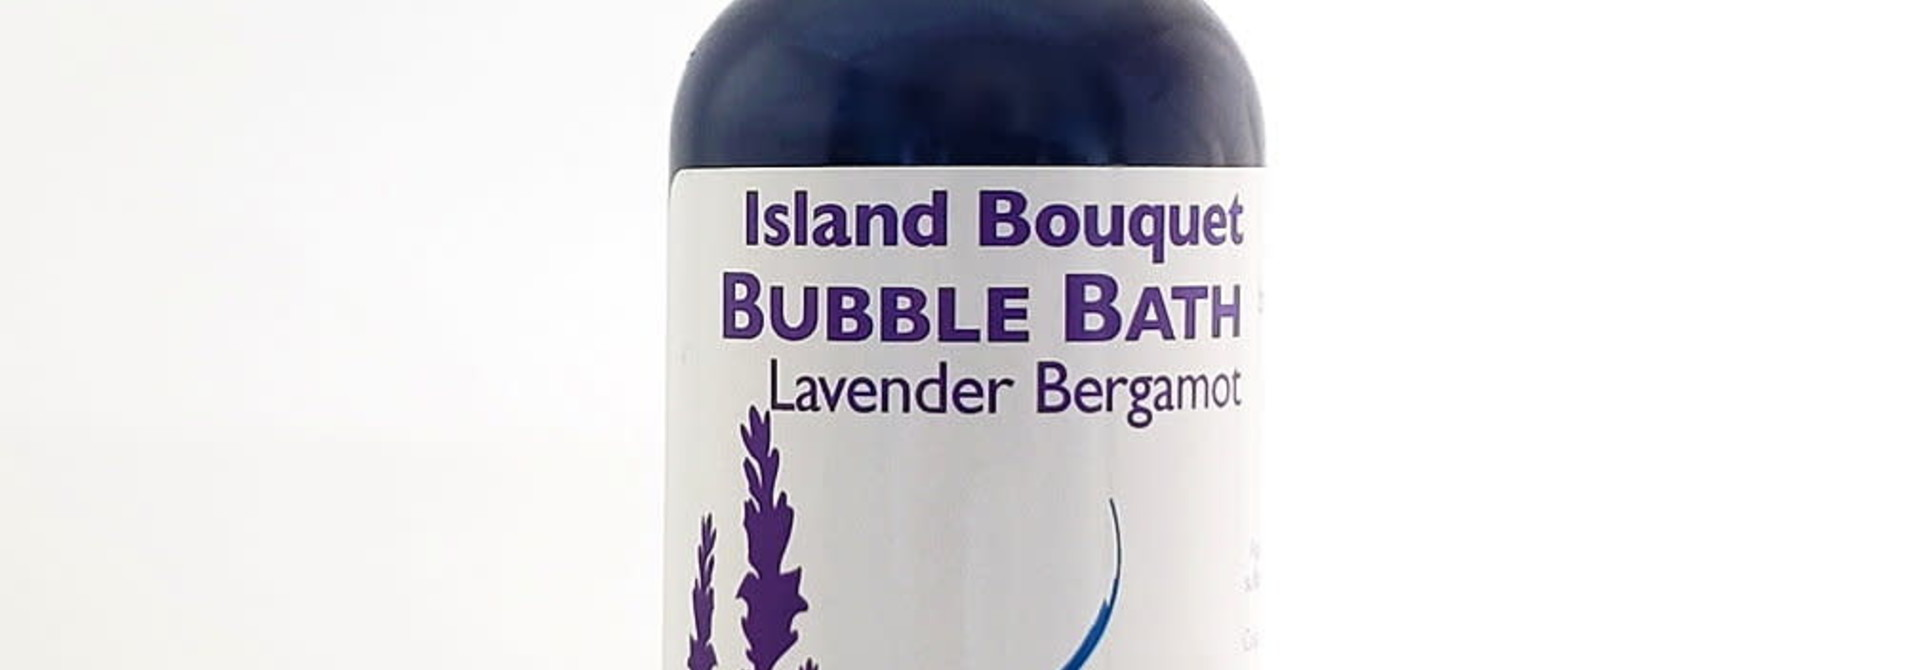 Island Bouquet Bubble Bath - 2 oz